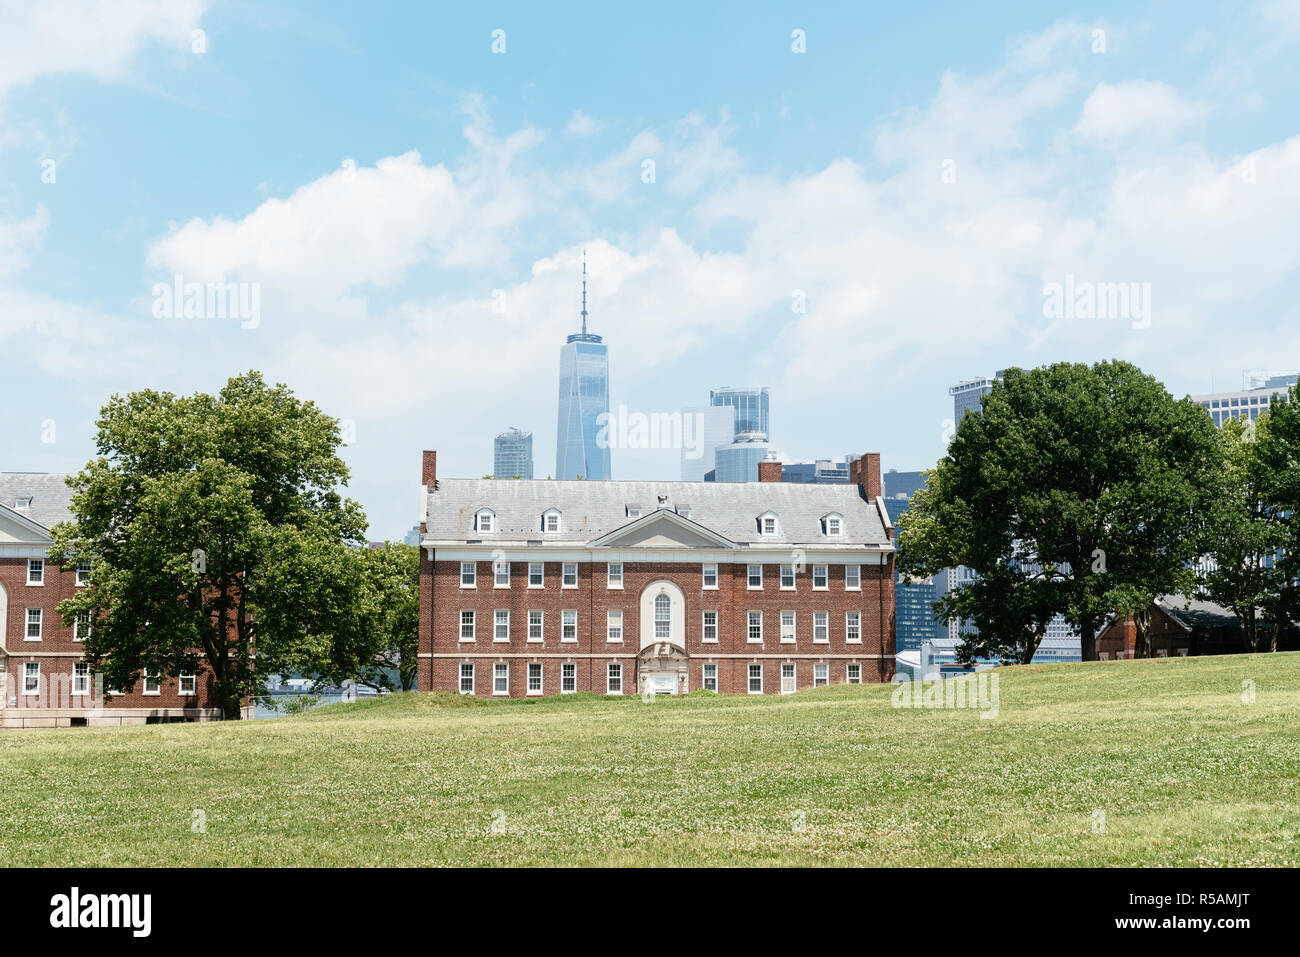 New York City, USA - June 24, 2018: Fort Jay in Governors Island against Downtown cityscape, it is a coastal star fort on Governors Island in New York - Stock Image